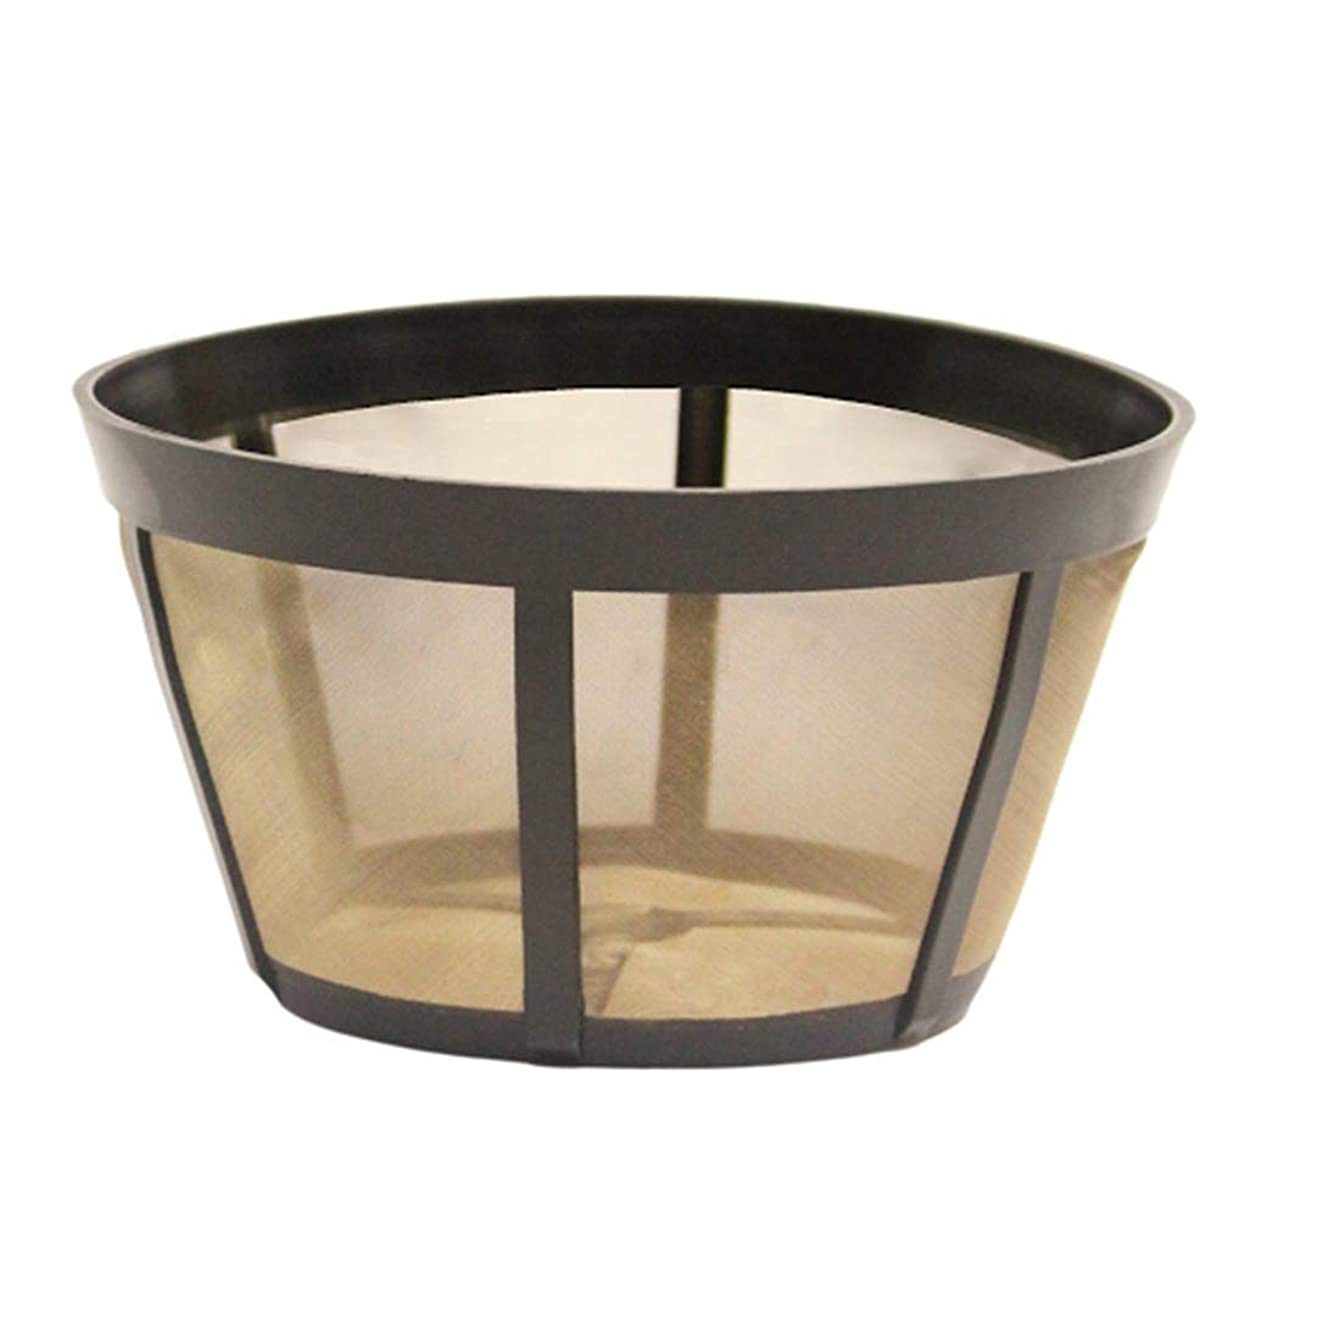 Bunn Replacement Washable Goldtone Basket Coffee Filter Fits Models: BX, BTX, GRX, NHB, NHS, ST, HG, HT